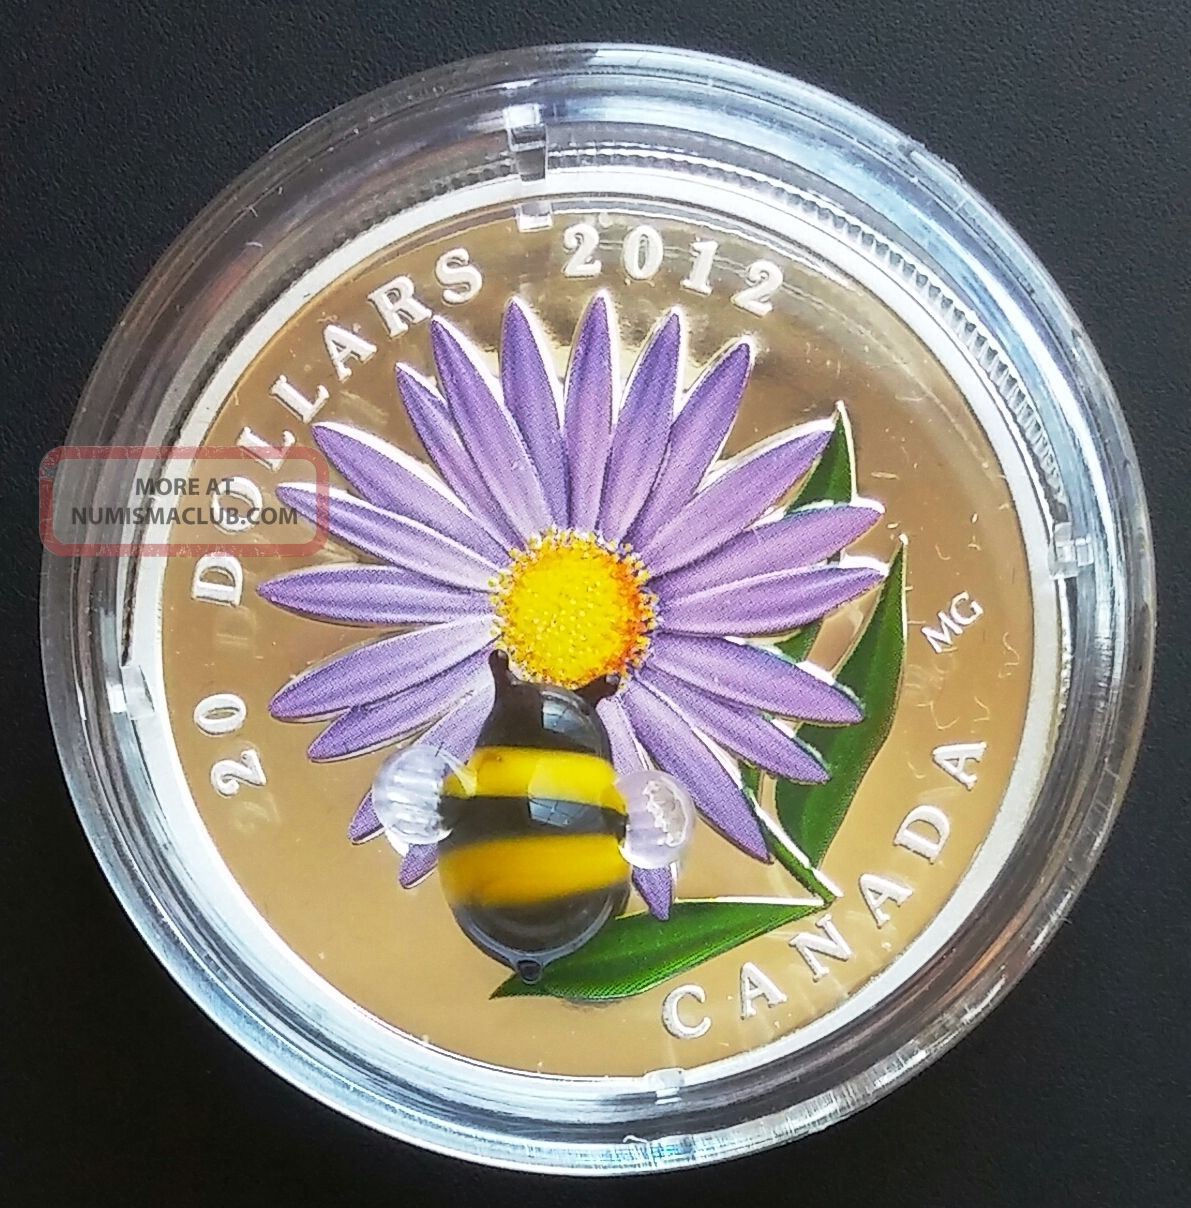 2012 Canada $20 Fine Silver Aster and Bumble Bee Coin